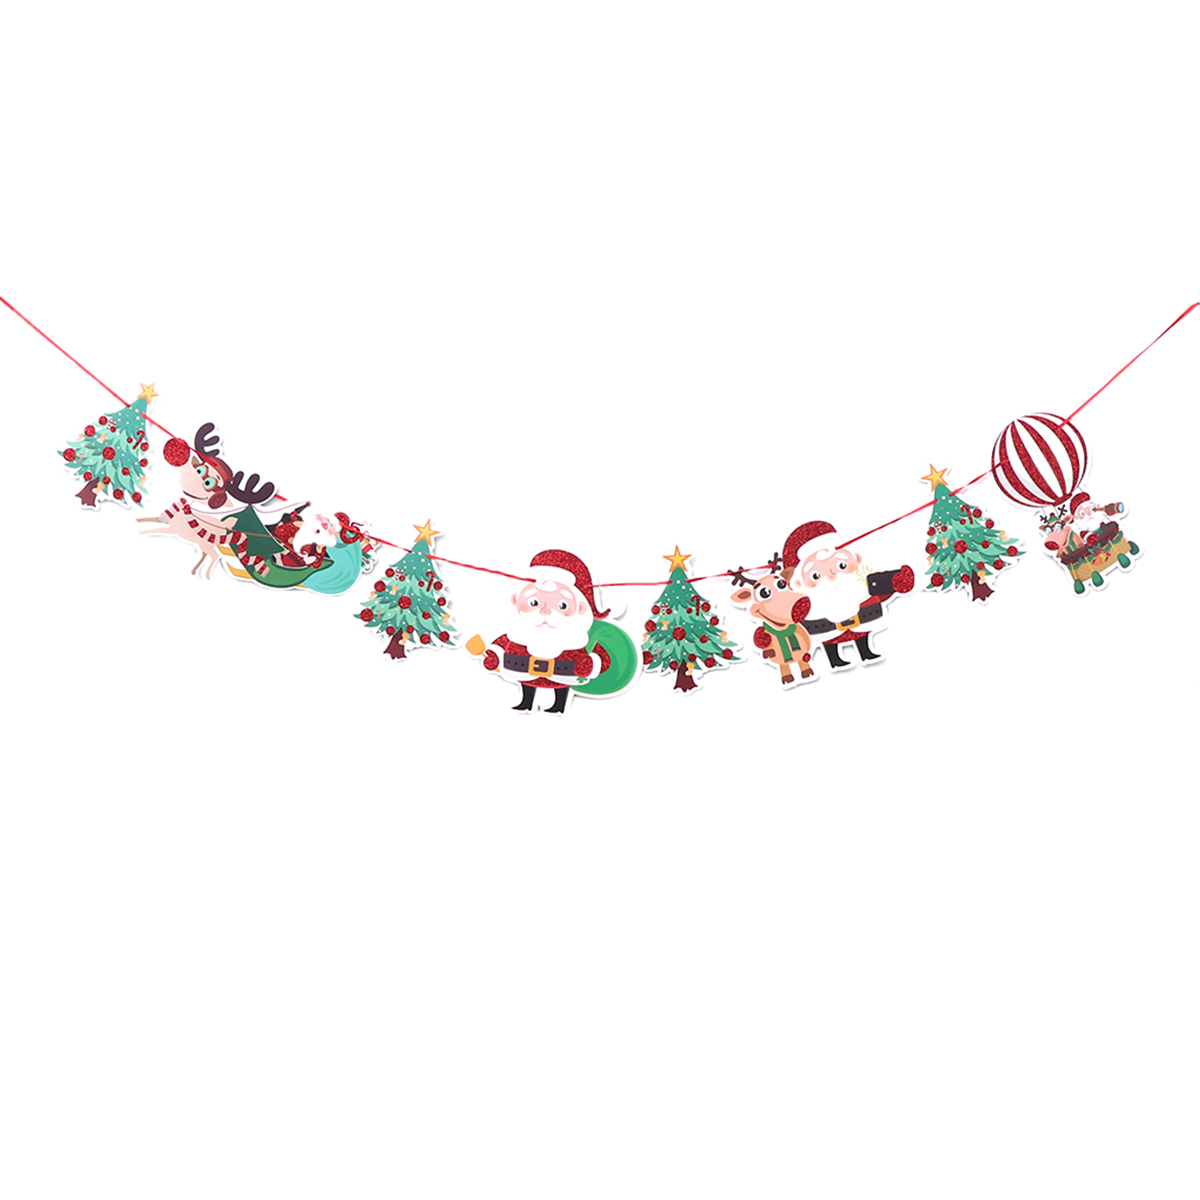 Merry Christmas Banner Bunting Hanging Flag Pendant Xmas Holiday Party Decor New